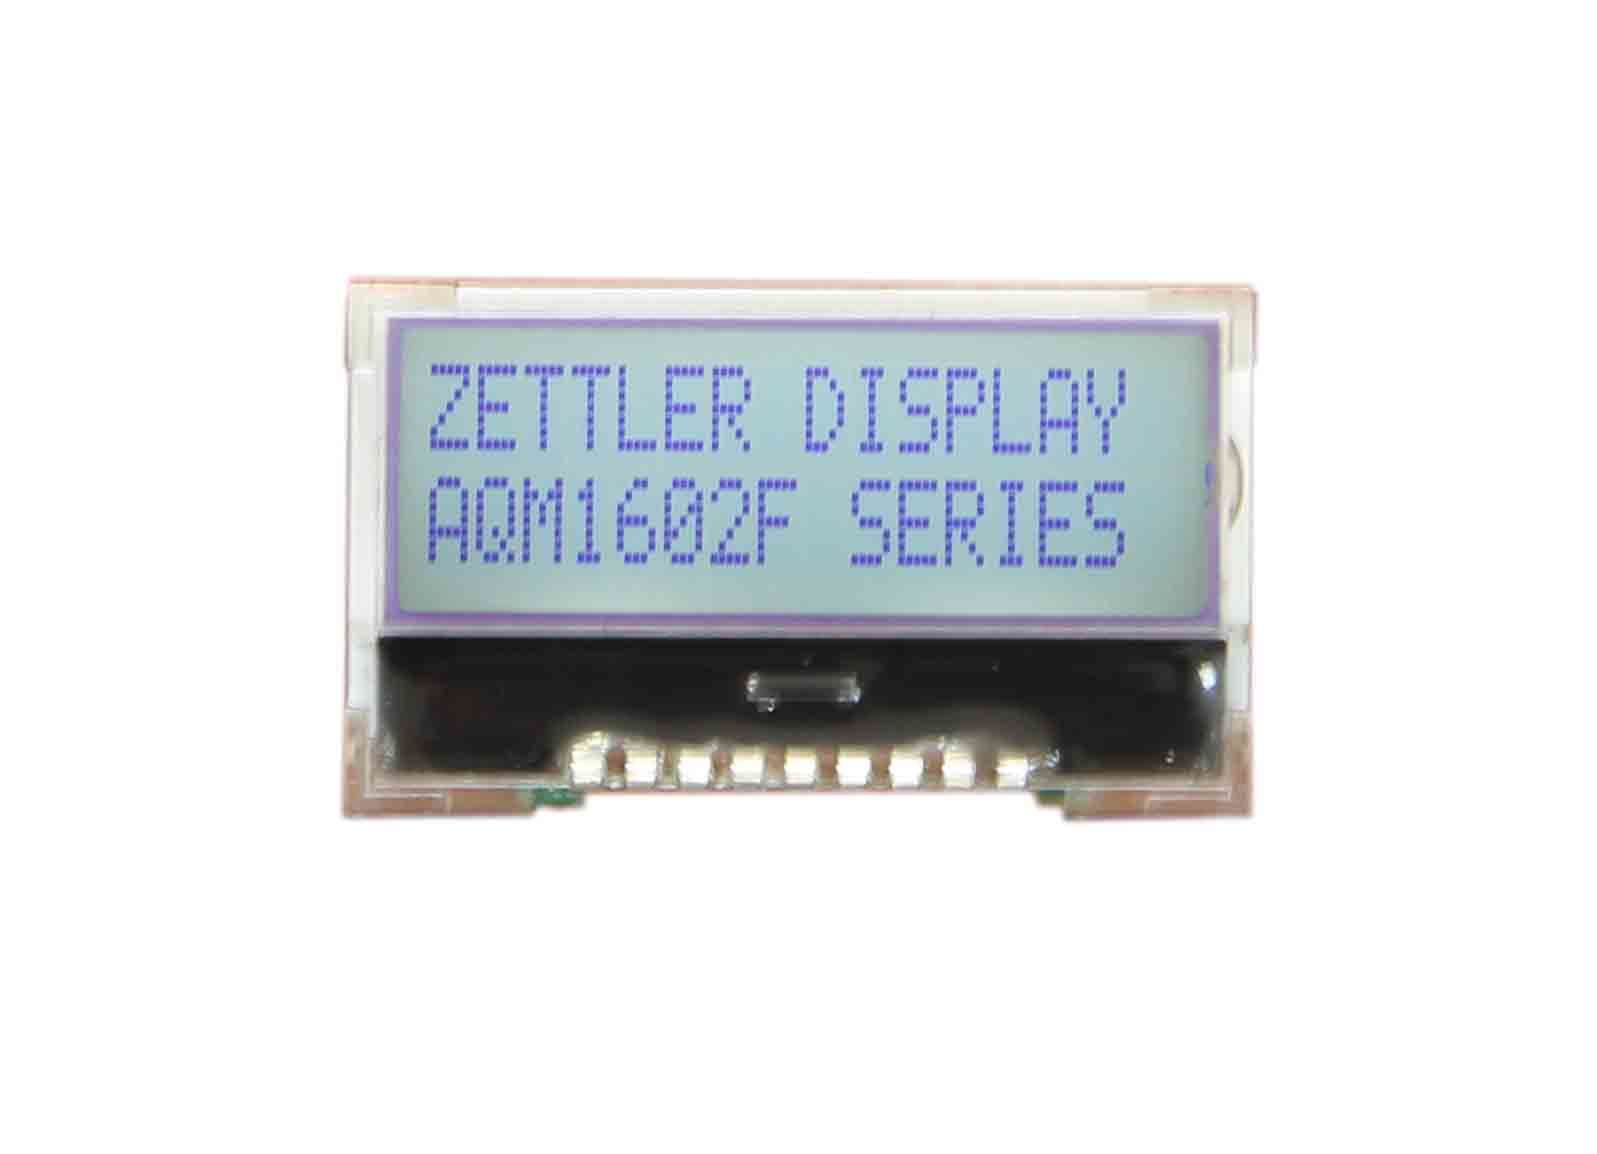 128 X 64 Dots Graphics LCD Display, Cog Module: AGM1264k Series